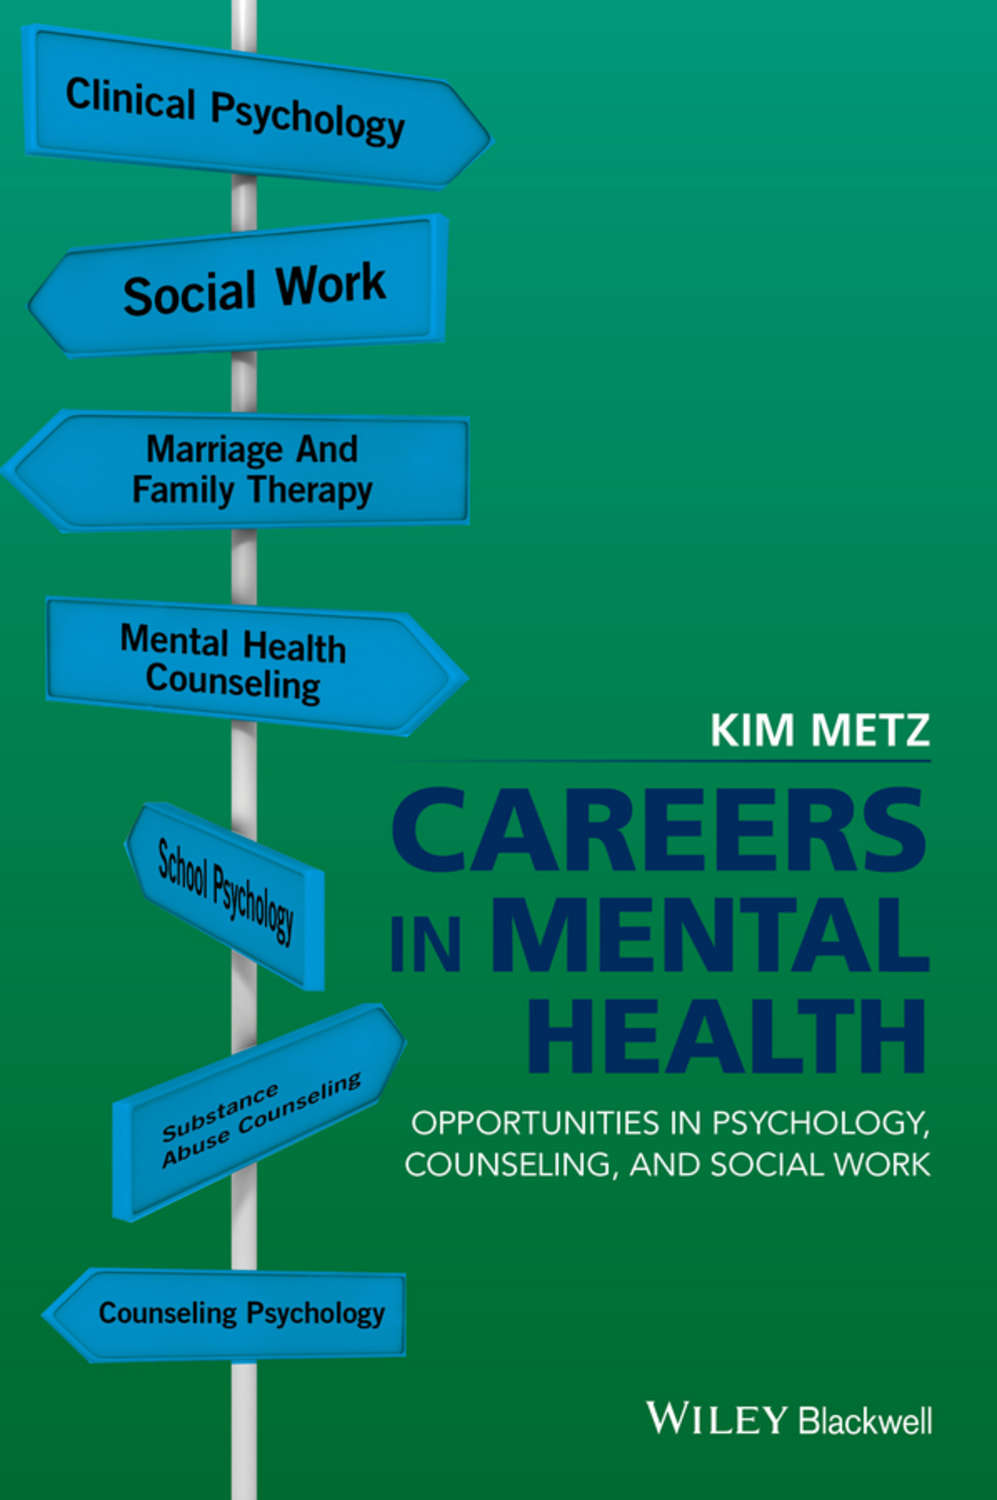 engaging with vulnerable people in mental health social work essay Current issues and programs in social welfare by dr jerry marx, social work department, university of new hampshire note: this entry is the first in a two-part series about current issues and programs in social welfare.